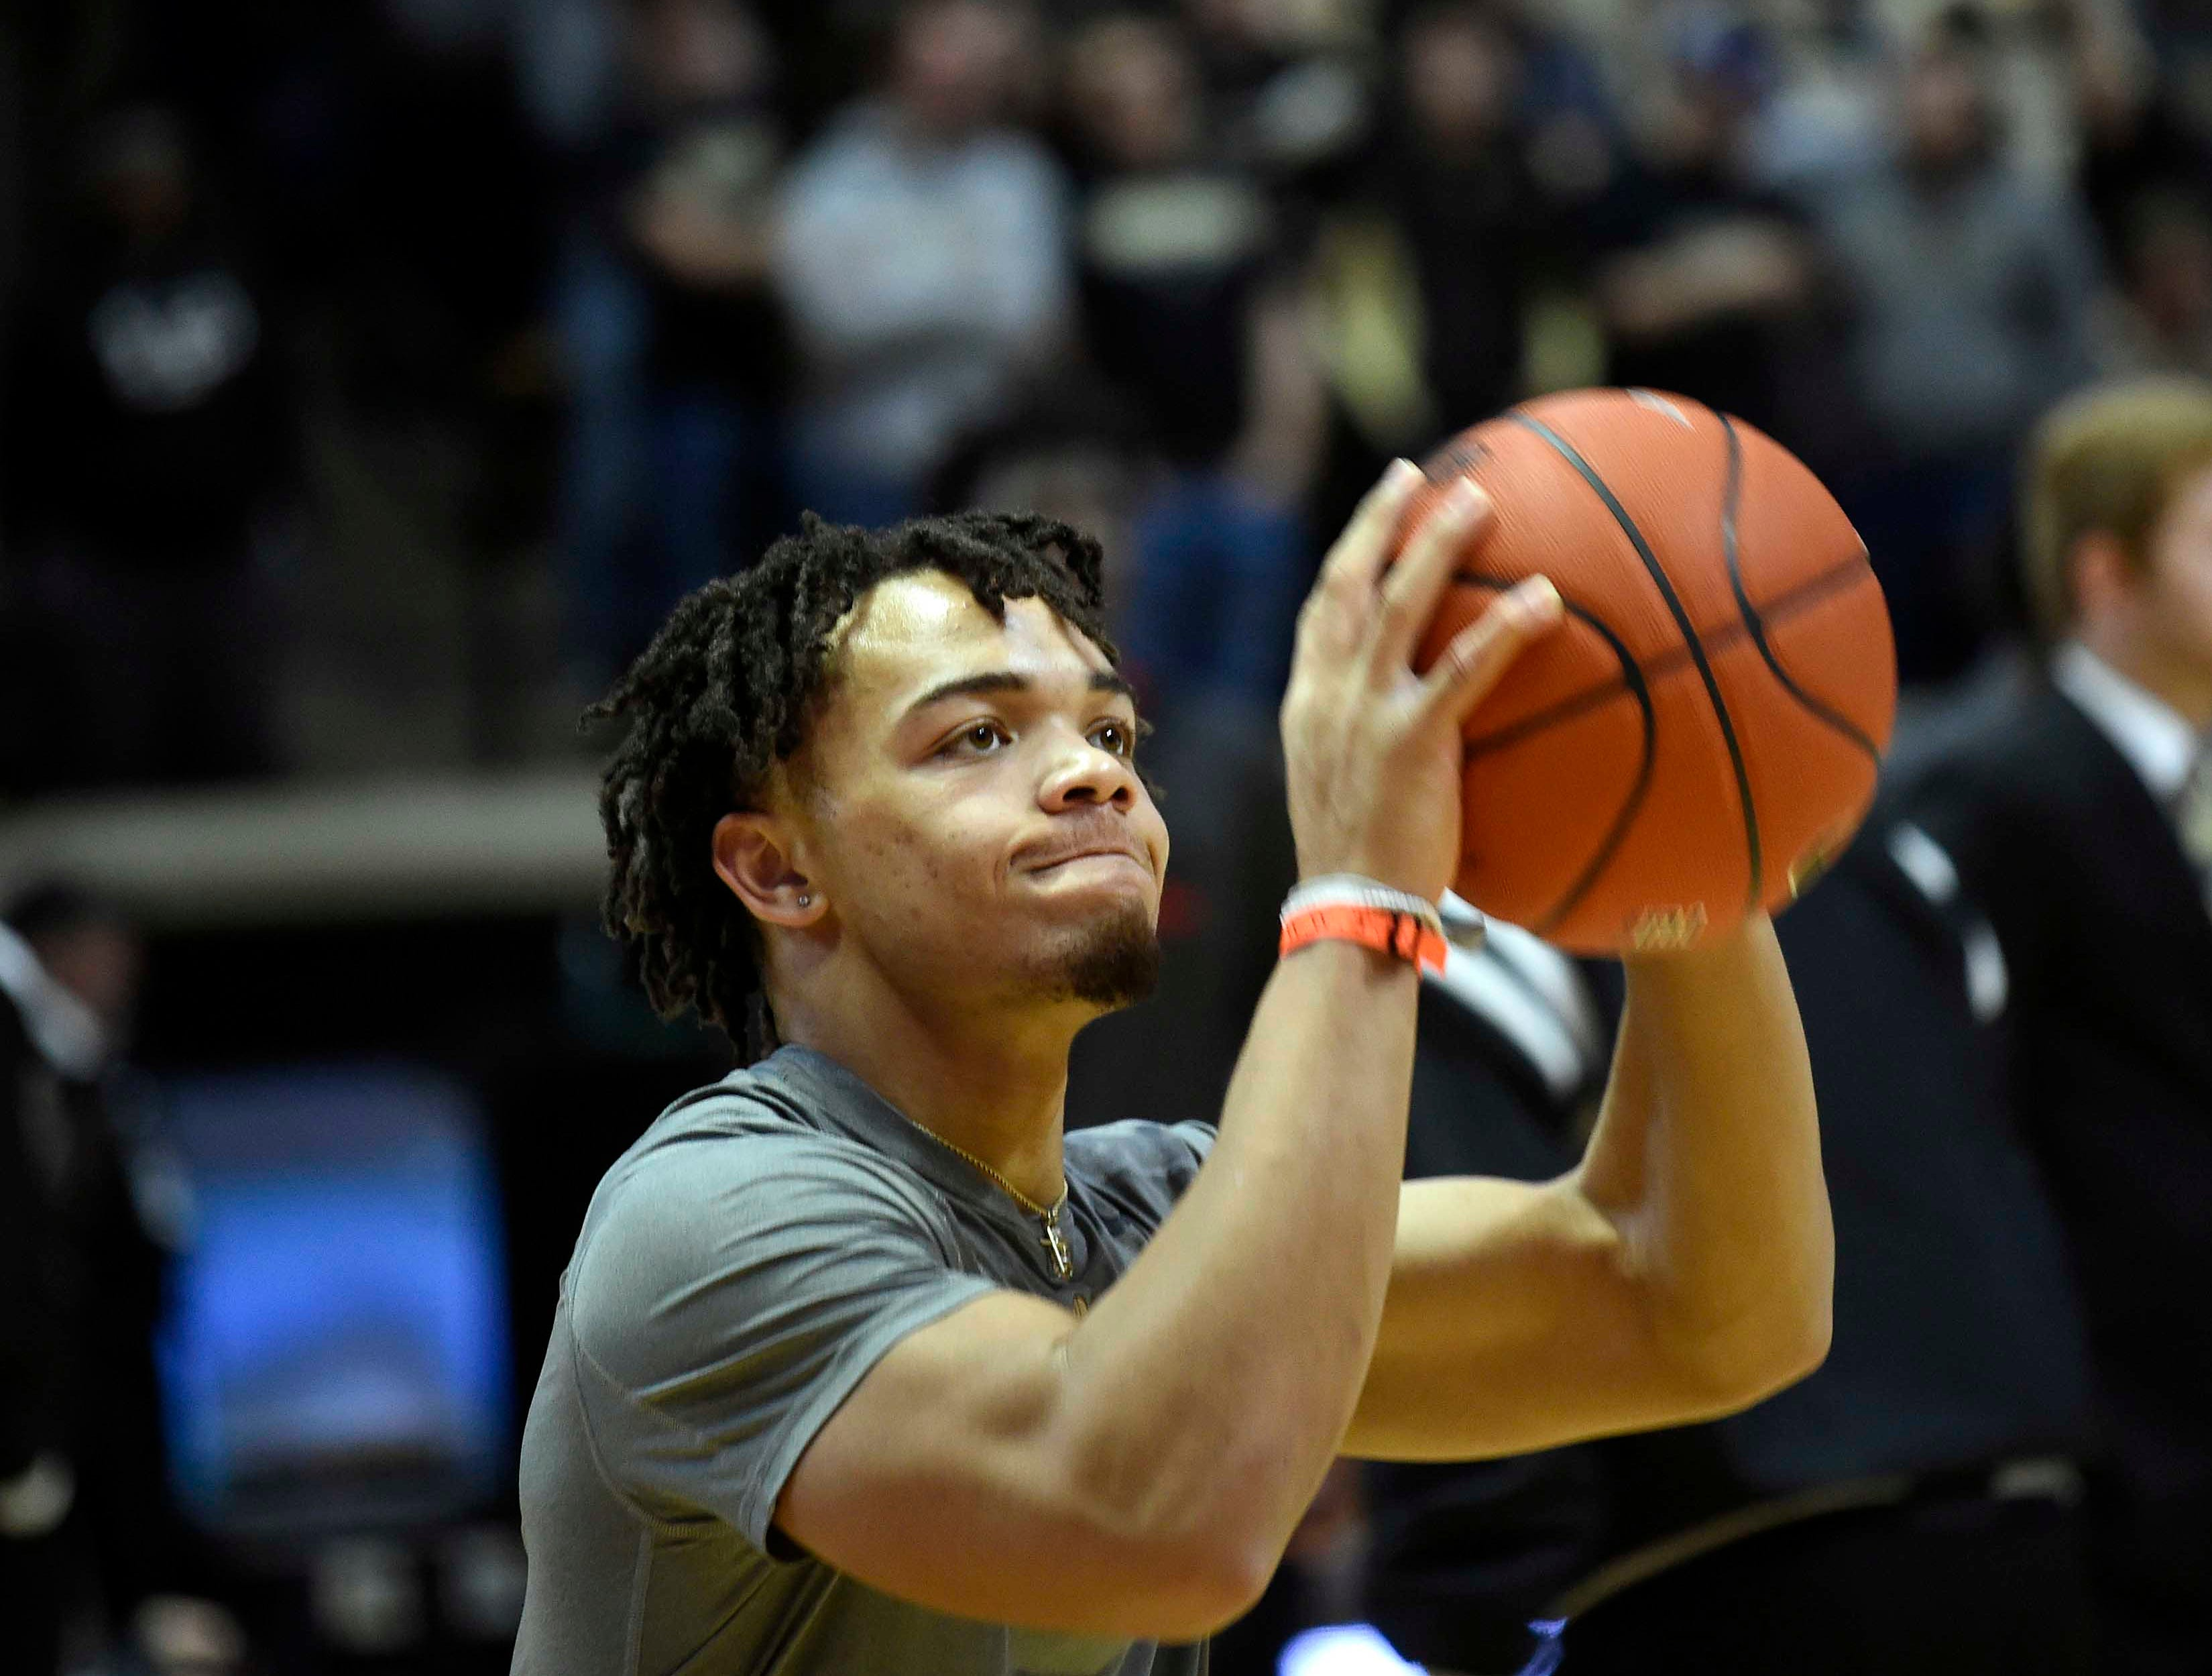 Jan 15, 2019; West Lafayette, IN, USA; Purdue Boilermakers guard Carsen Edwards (3) before the game against the Rutgers Scarlet Knights  at Mackey Arena. Mandatory Credit: Sandra Dukes-USA TODAY Sports